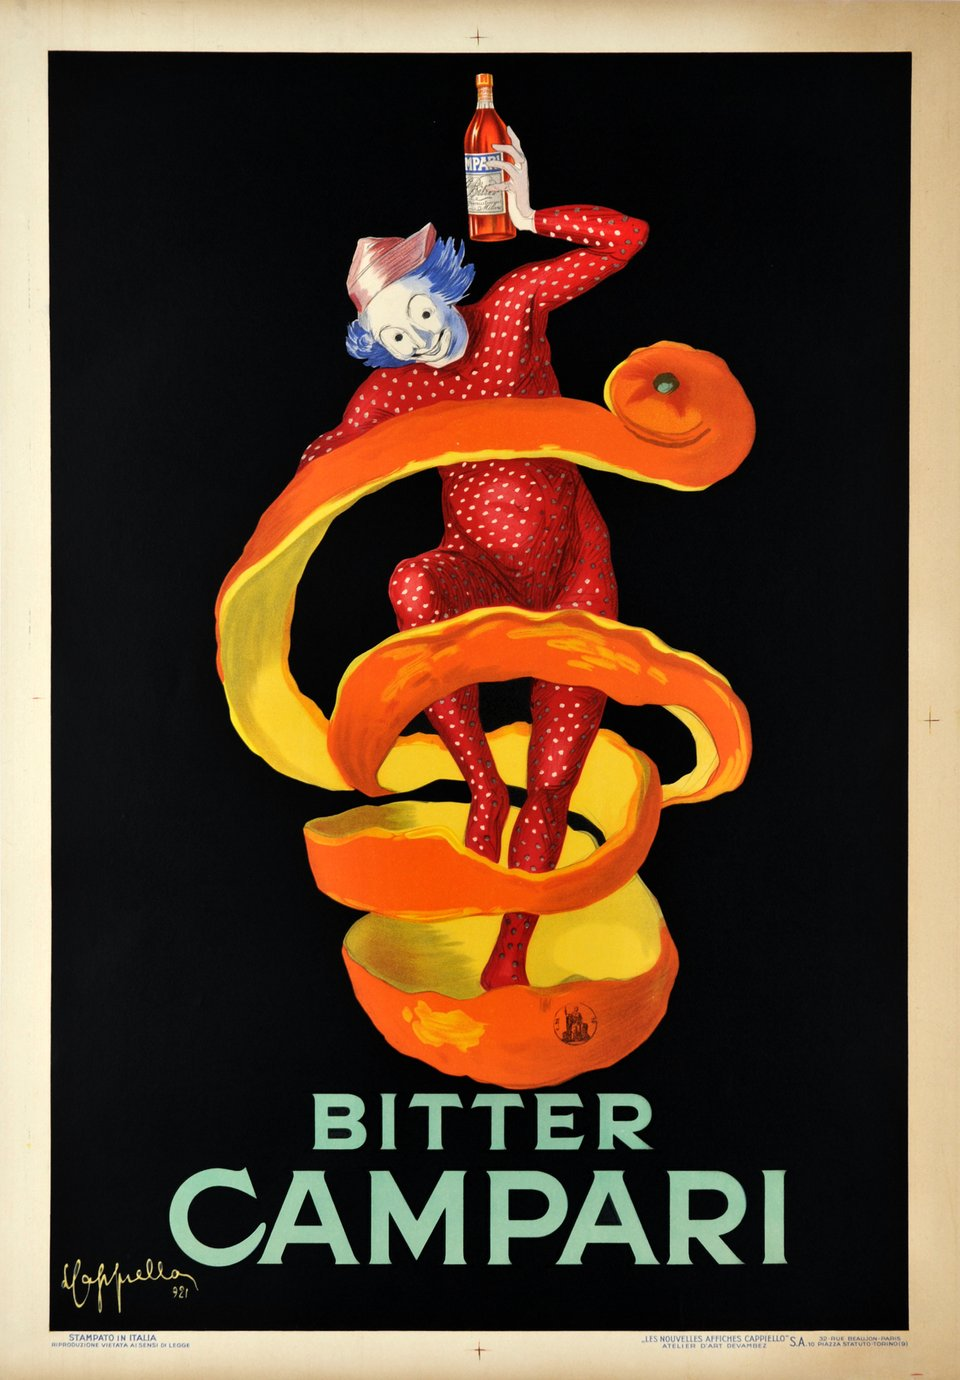 Campari. Bitter Campari 1921, Orange peel – Vintage poster – Leonetto CAPPIELLO – 1921